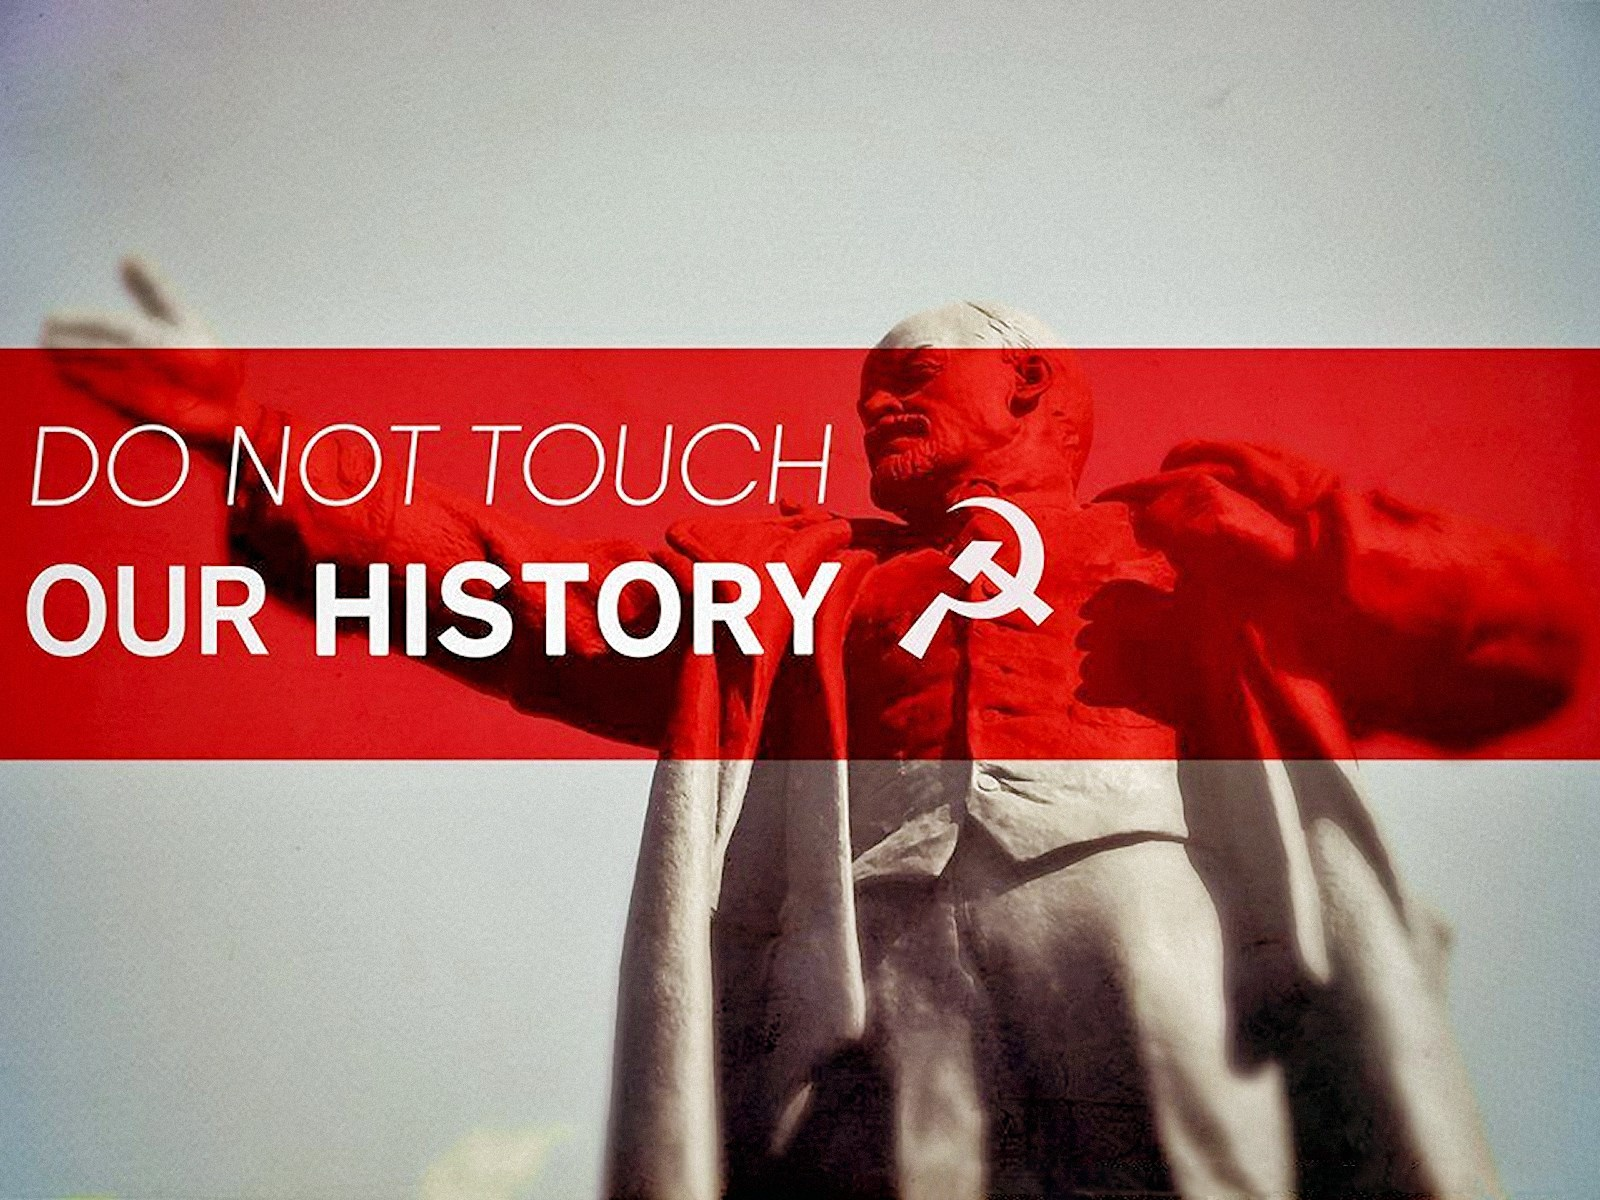 00 lenin. do not touch our history. 040715